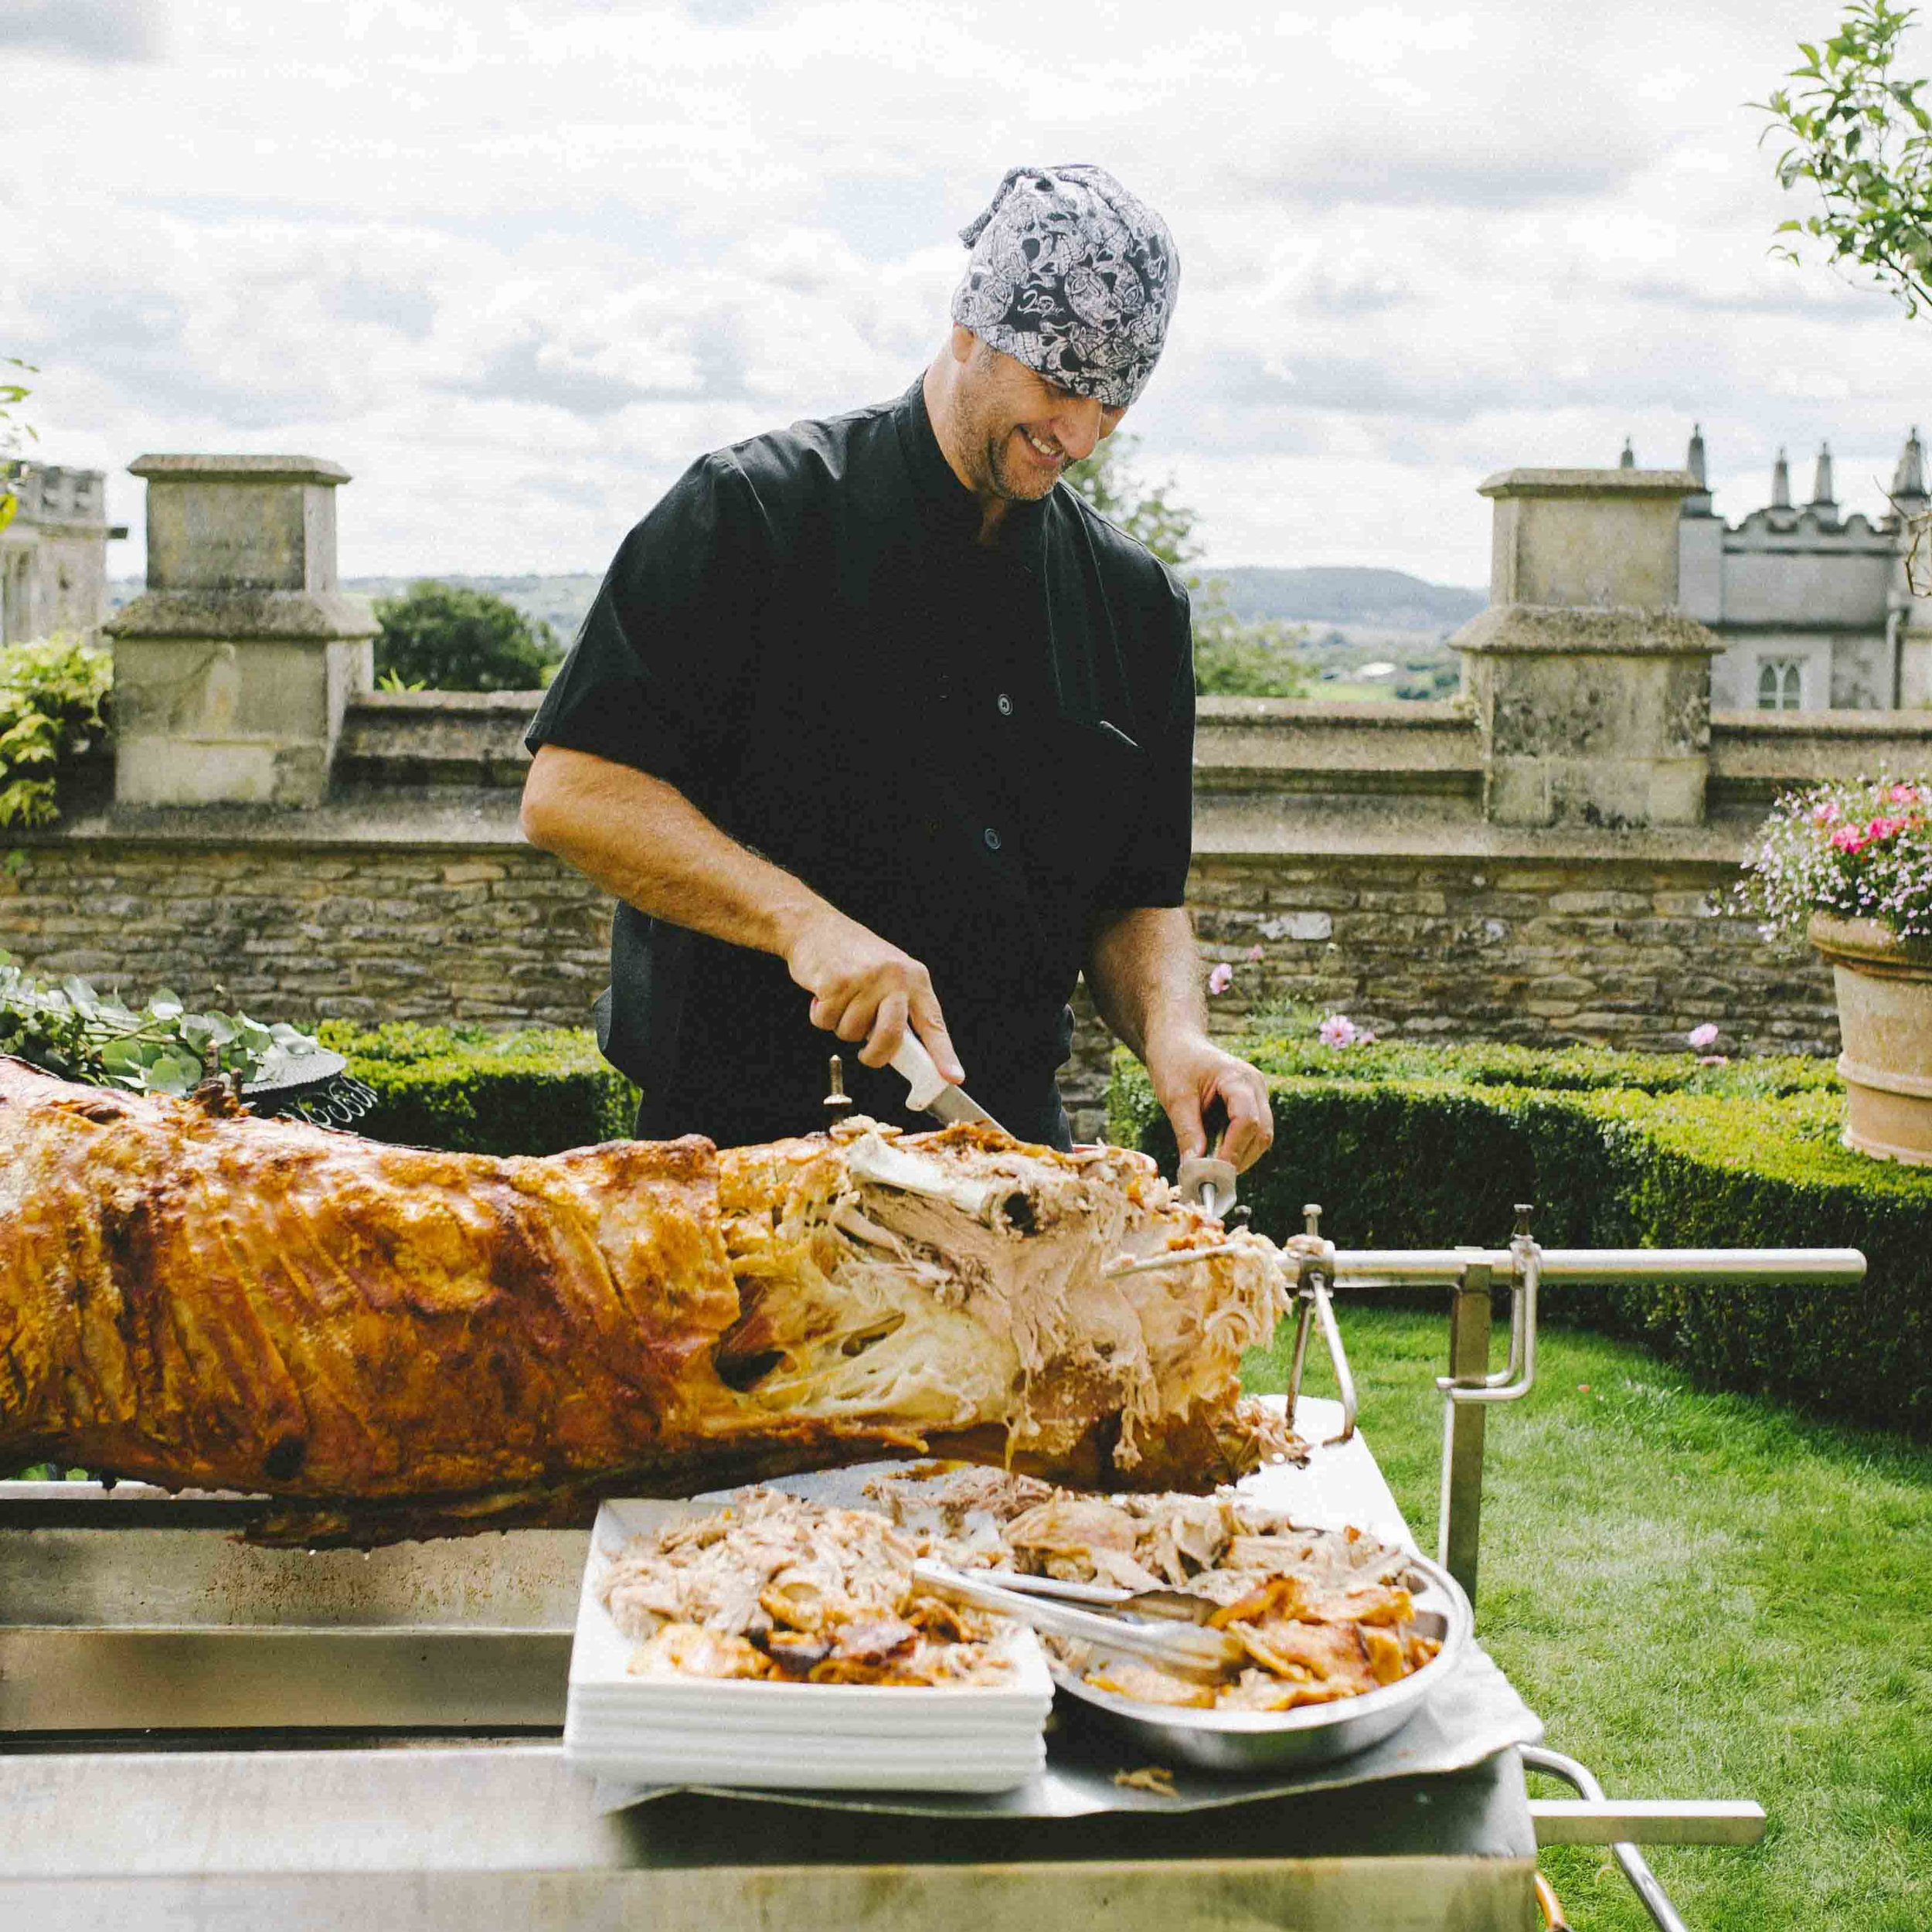 Hog Roast Event Catering - Weddings, Private and Corporate